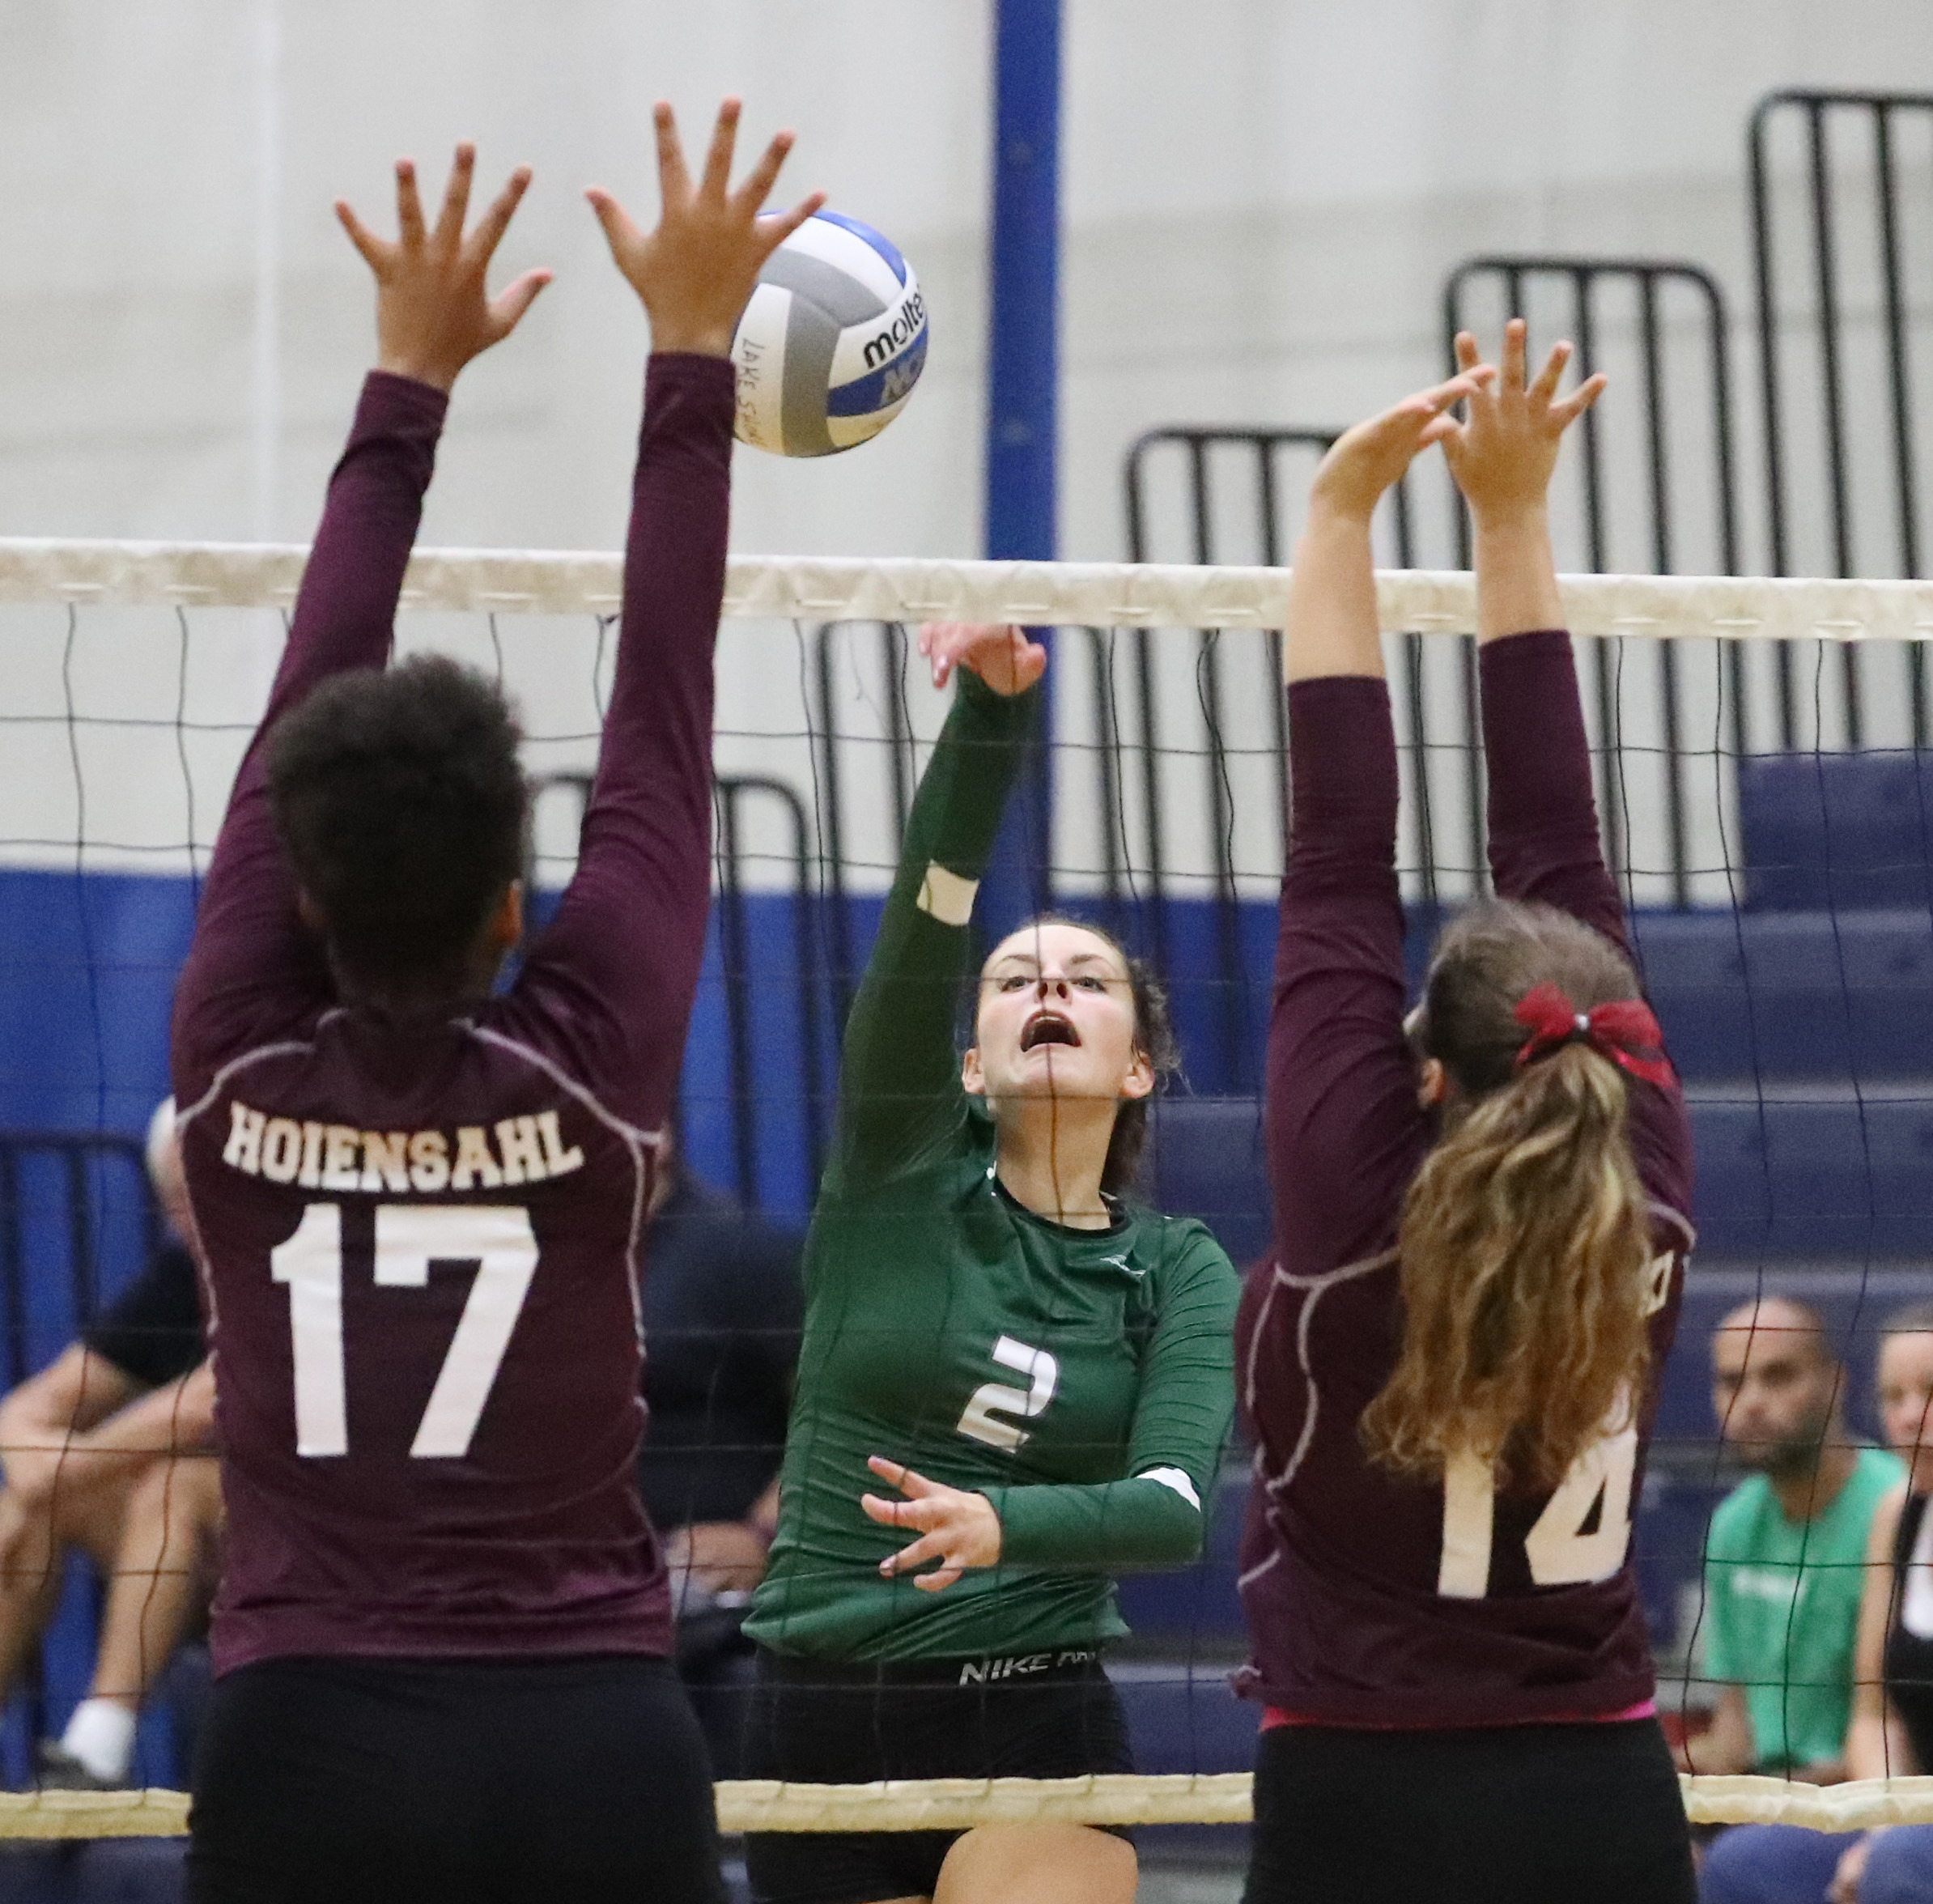 Lake Shore's Talia Wright spikes the ball against Maryvale's Alexa Hoiensahl and Emily Raczynski in their volleyball match Tuesday.